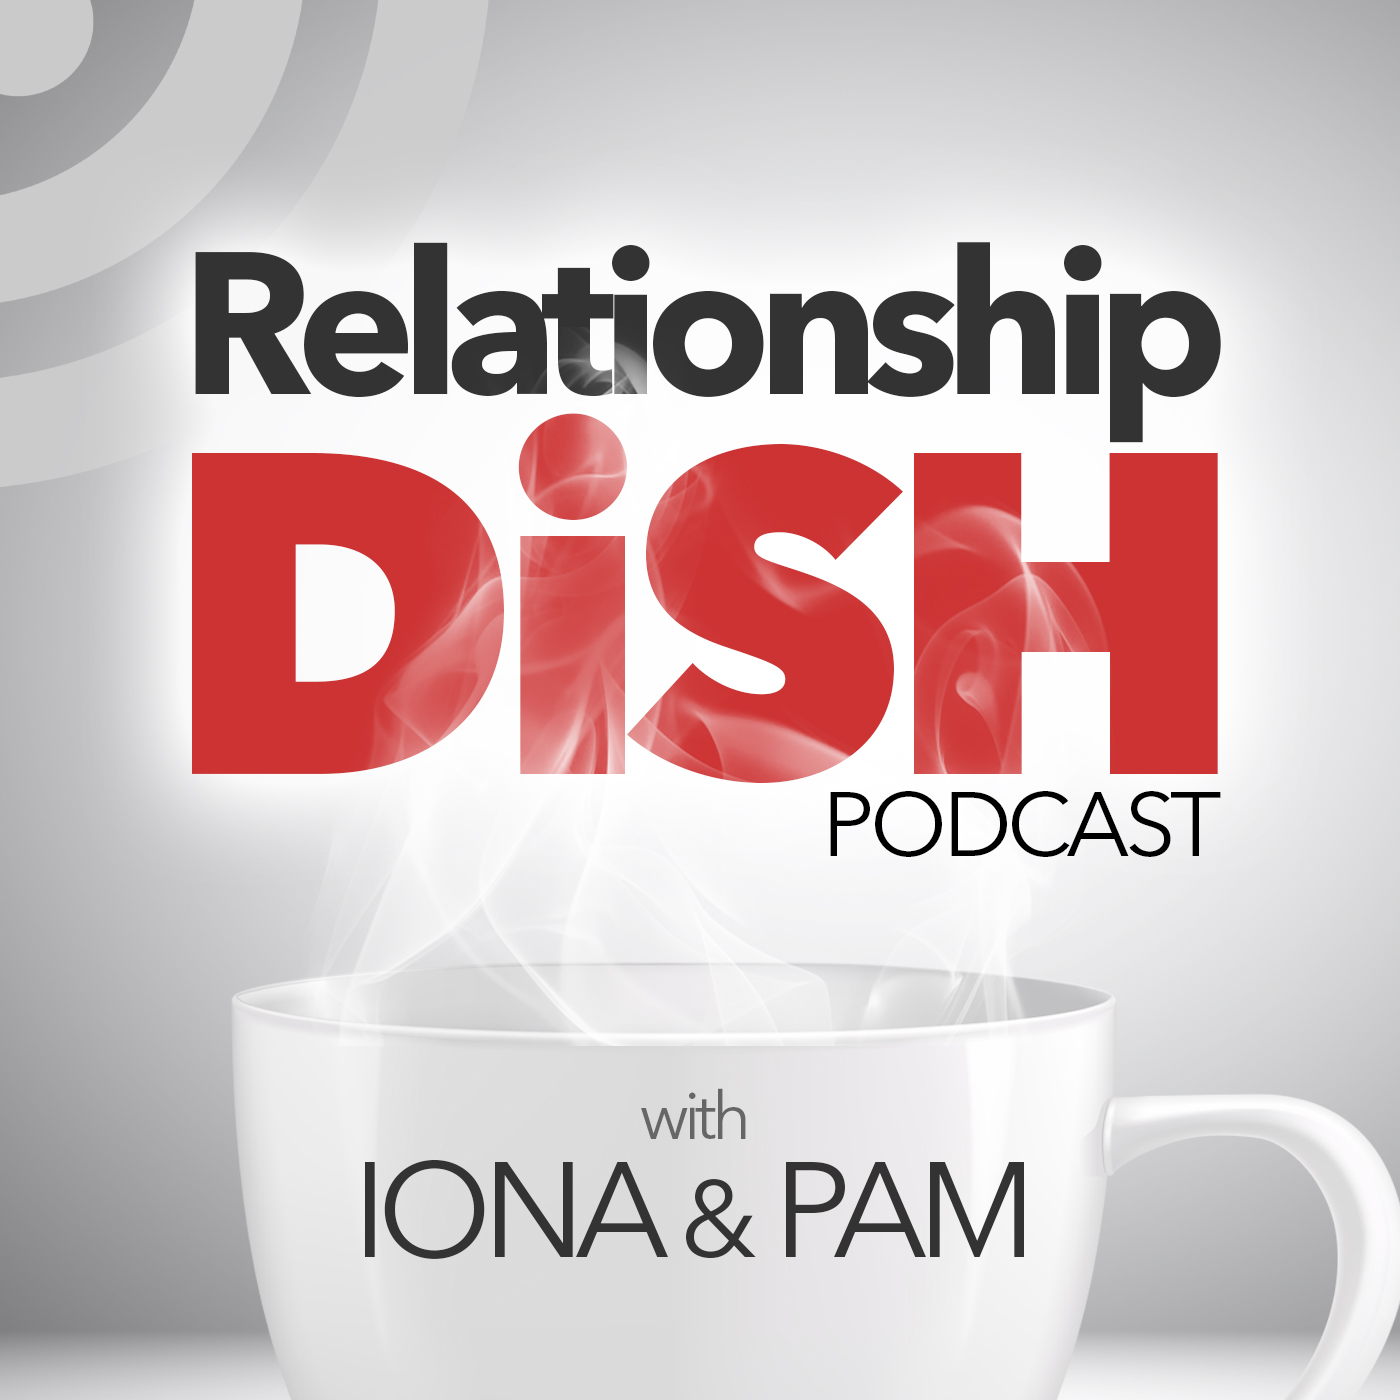 Relationship Dish - ep 82 / The Kindness of Strangers a Tribute to 911